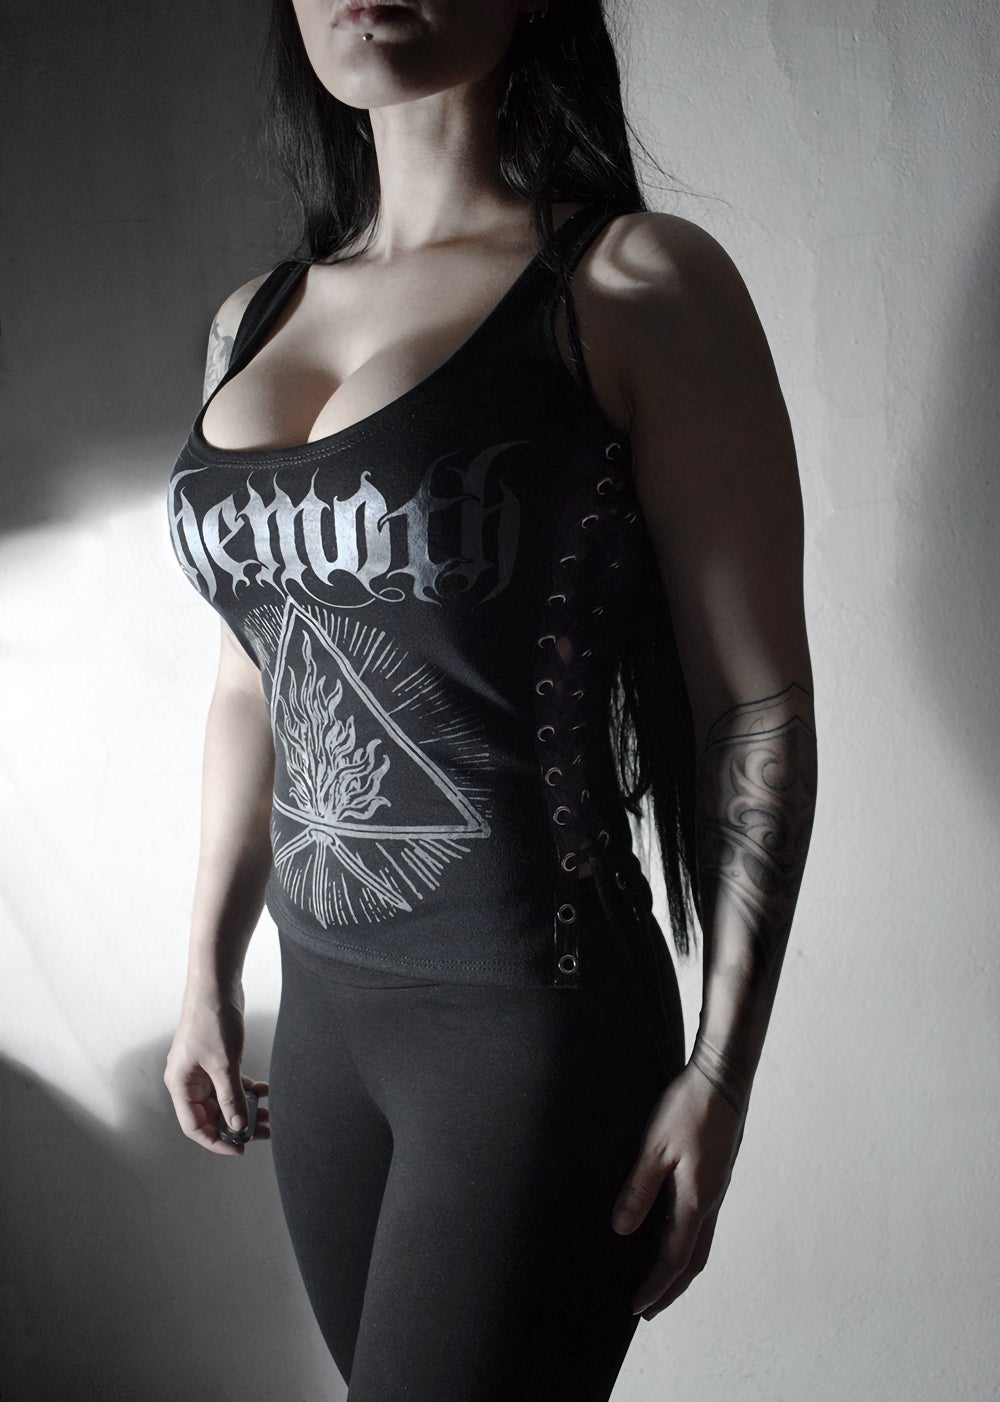 Image of Behemoth Furor Divinus Top Shirt  Lace-up on sides Tank Top FREE SHIPPING